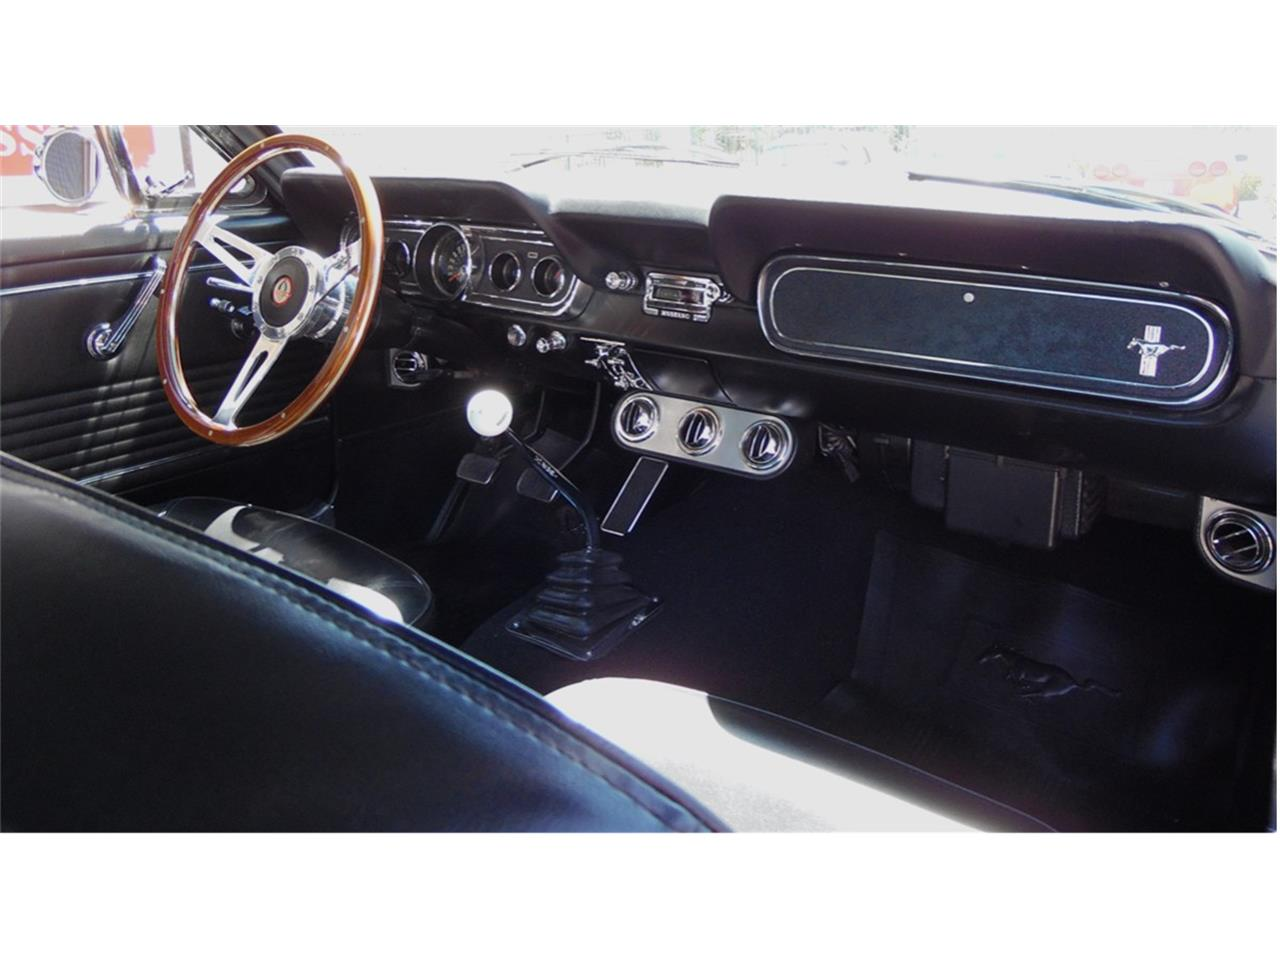 Large Picture of Classic 1966 Ford Mustang located in Redlands California - $57,995.00 - LD2L